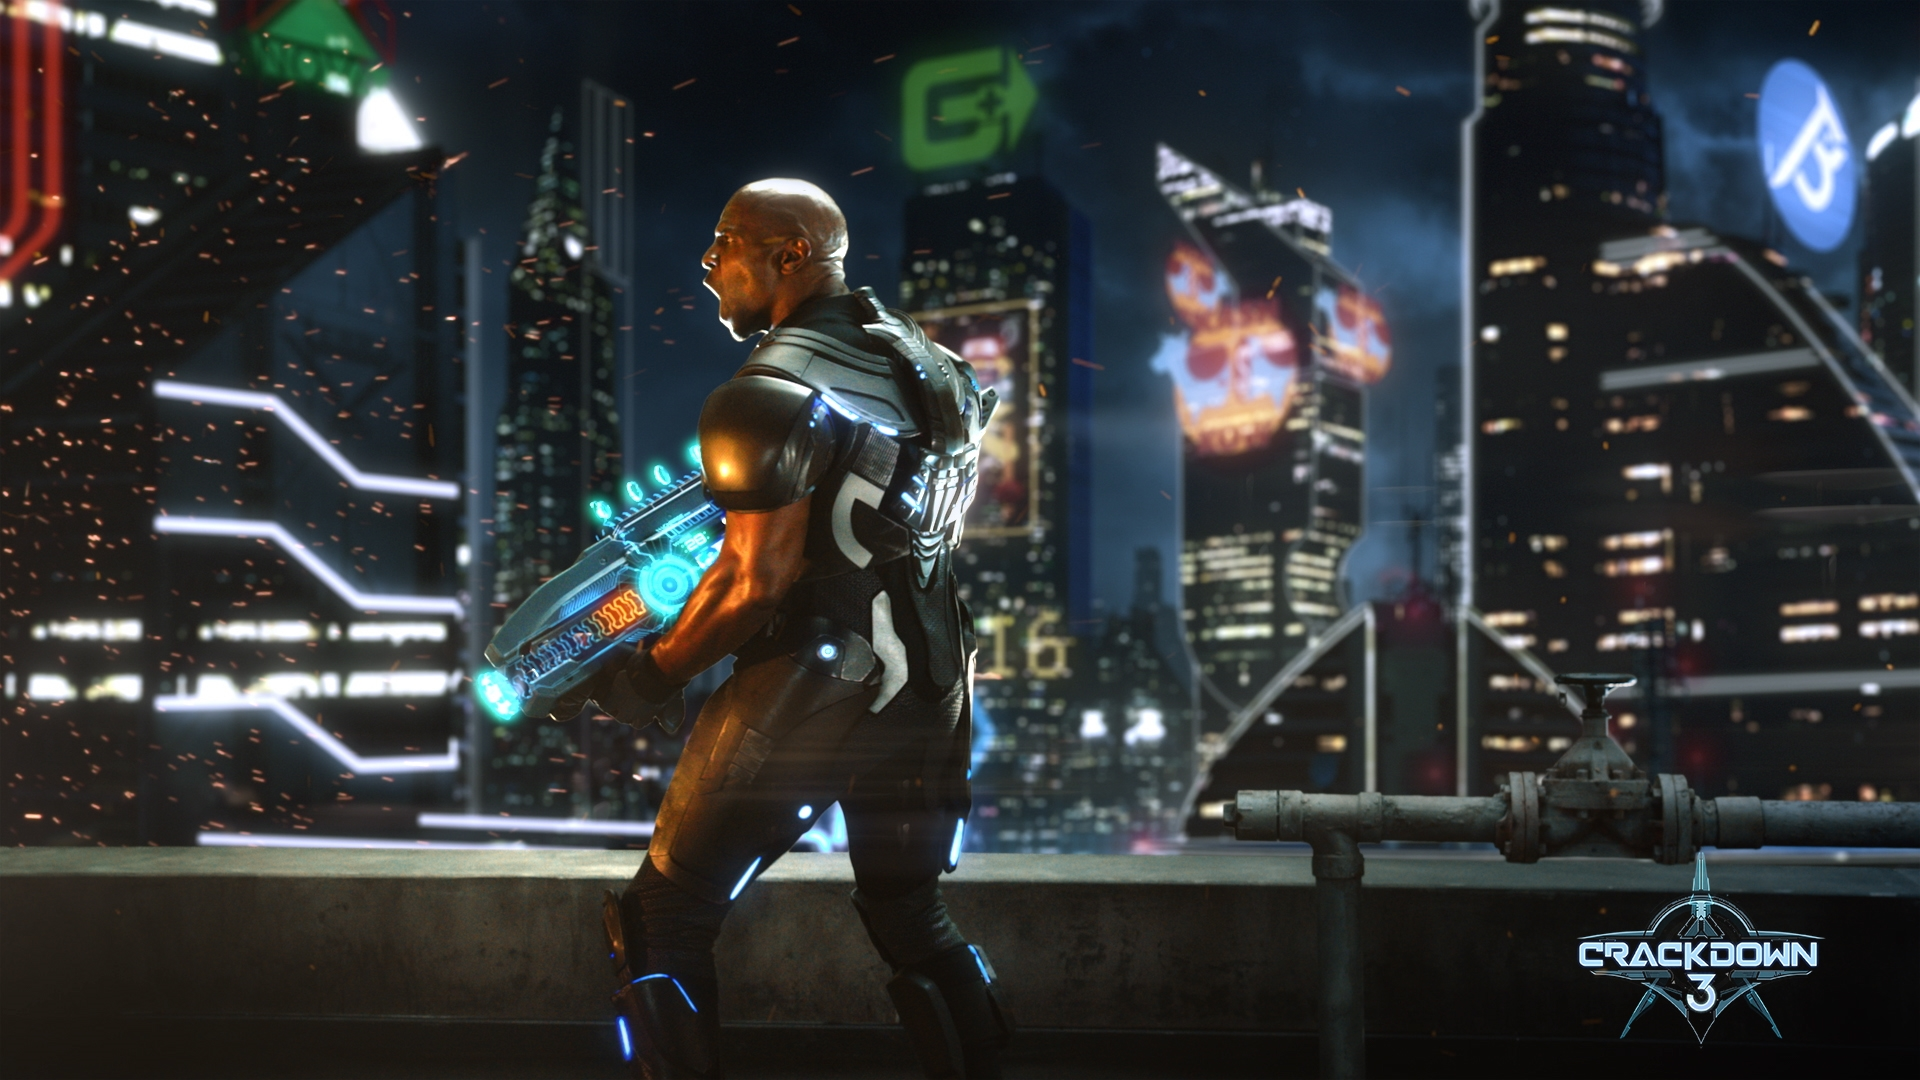 Crackdown 3 hands-on preview and interview – launching the Xbox One X